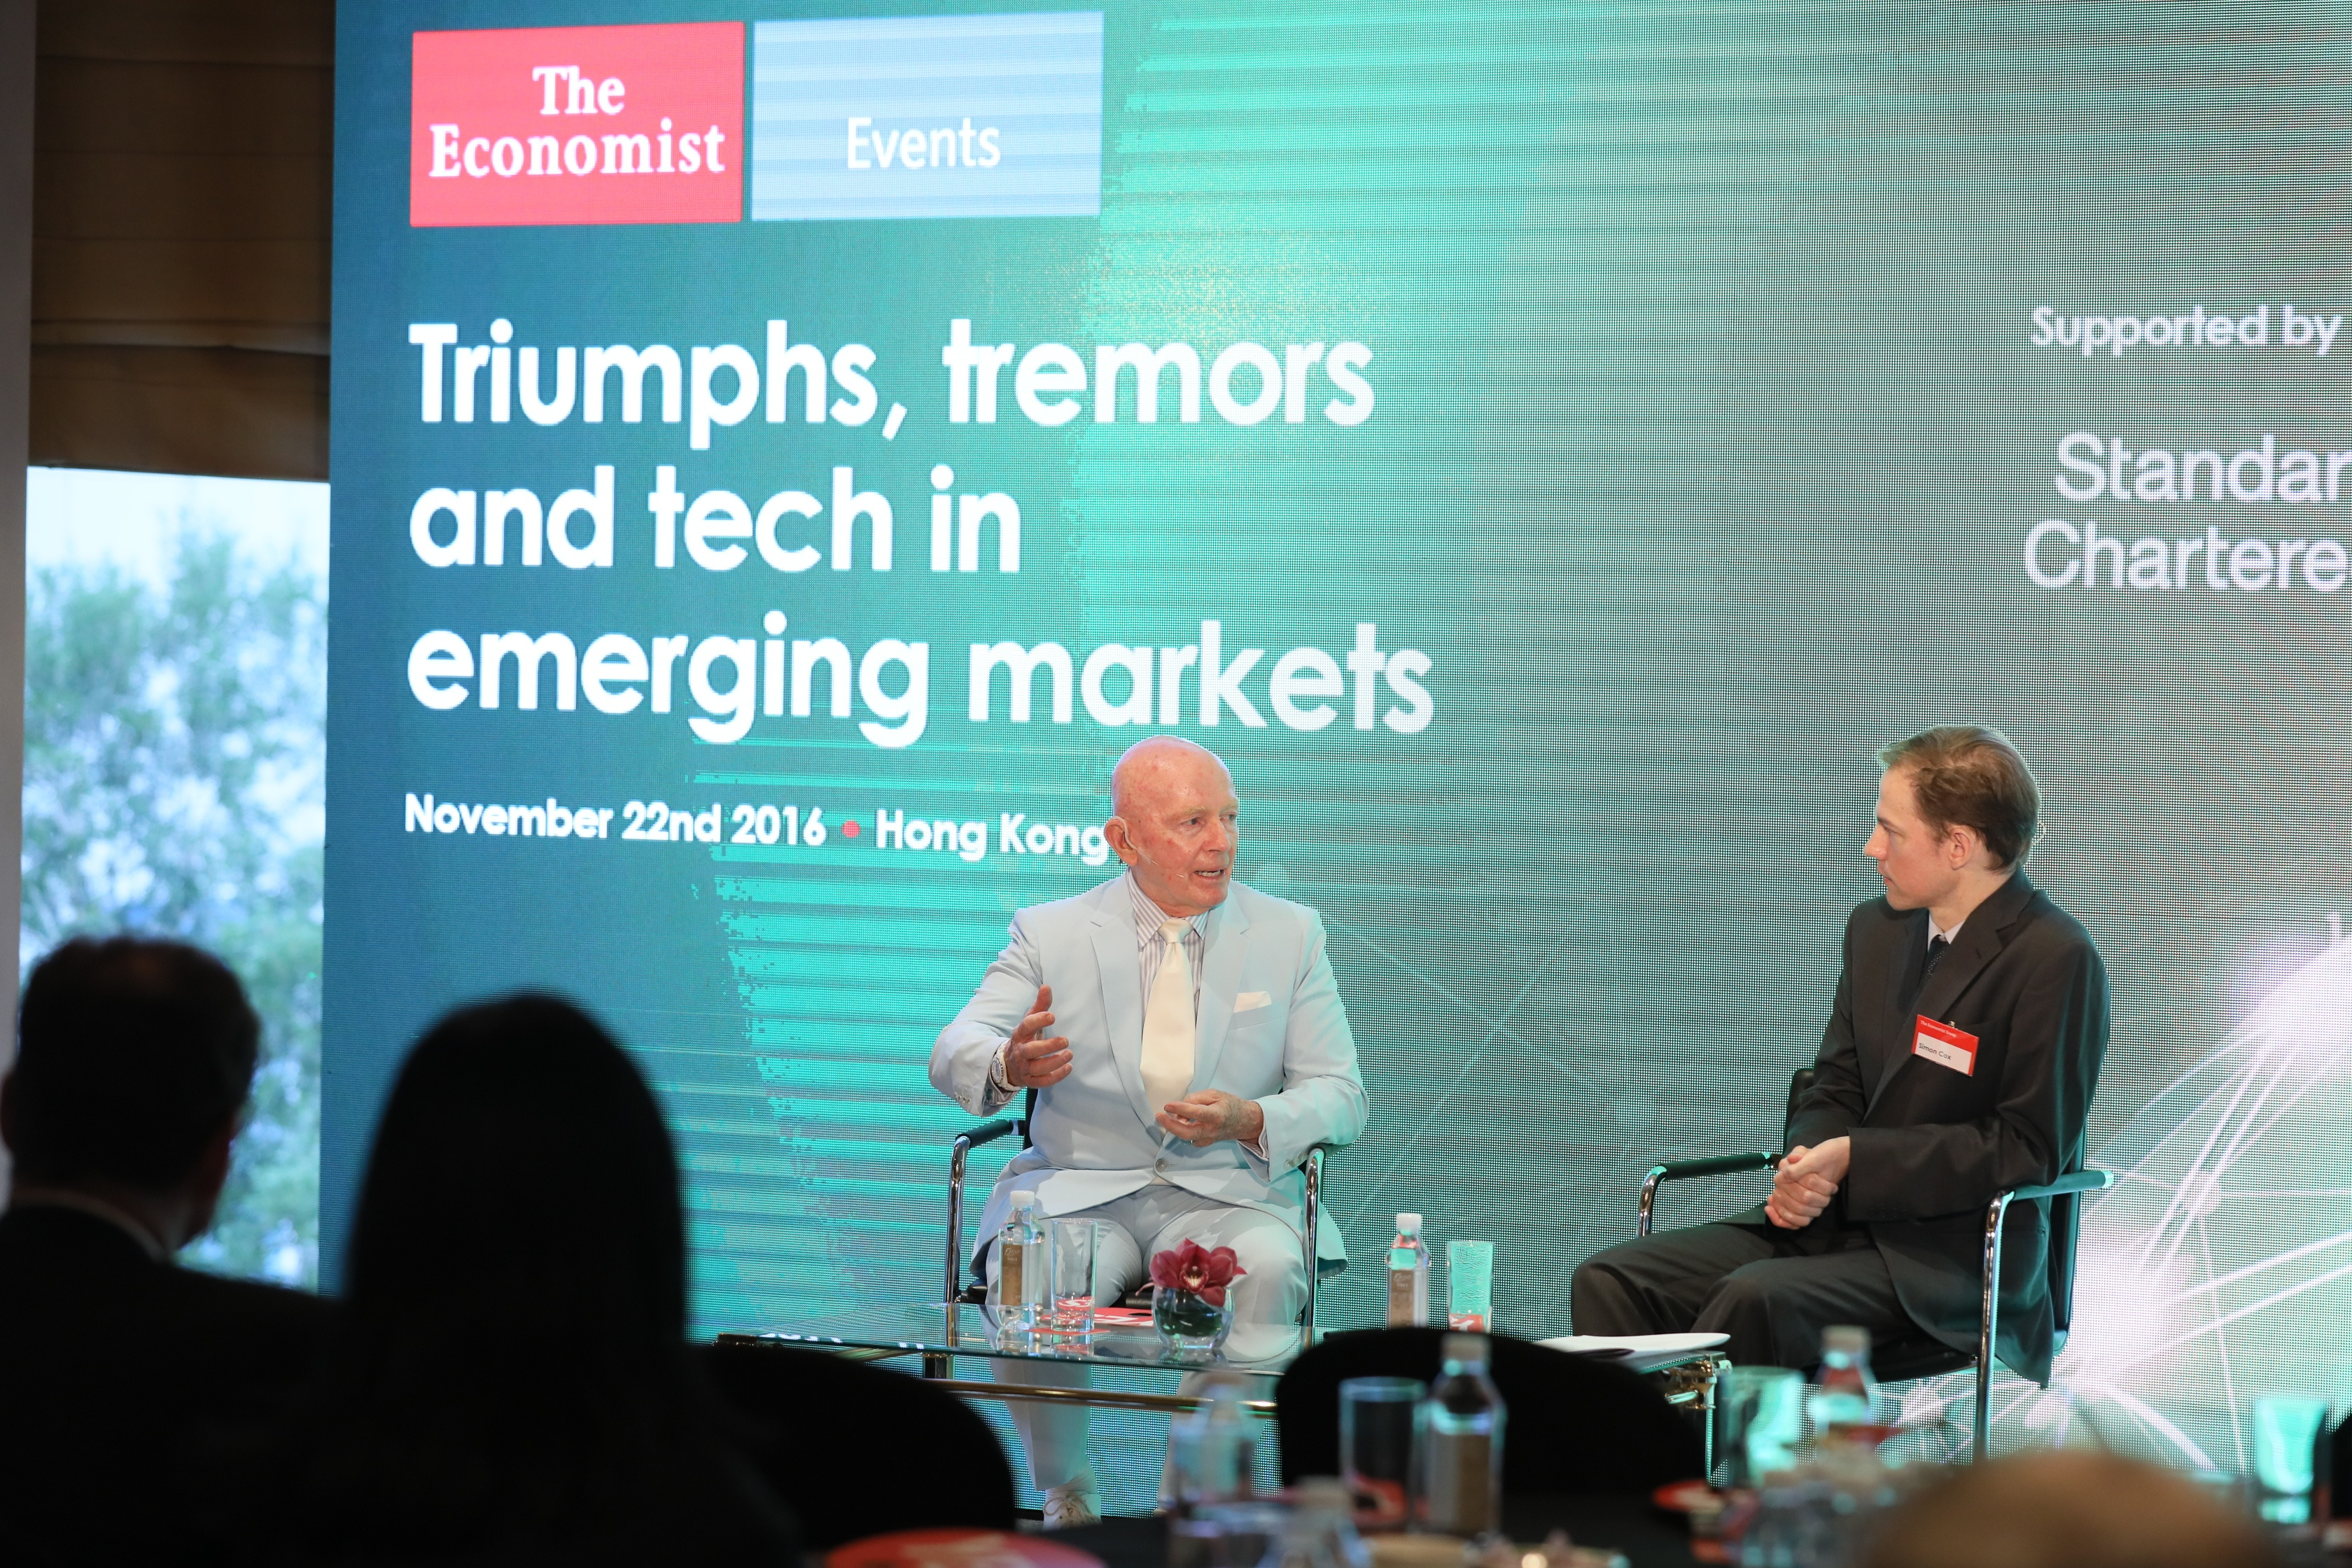 sofaer capital global research hk limited beddinge bett sofa hong kong 2016 triumphs tremors and tech in emerging